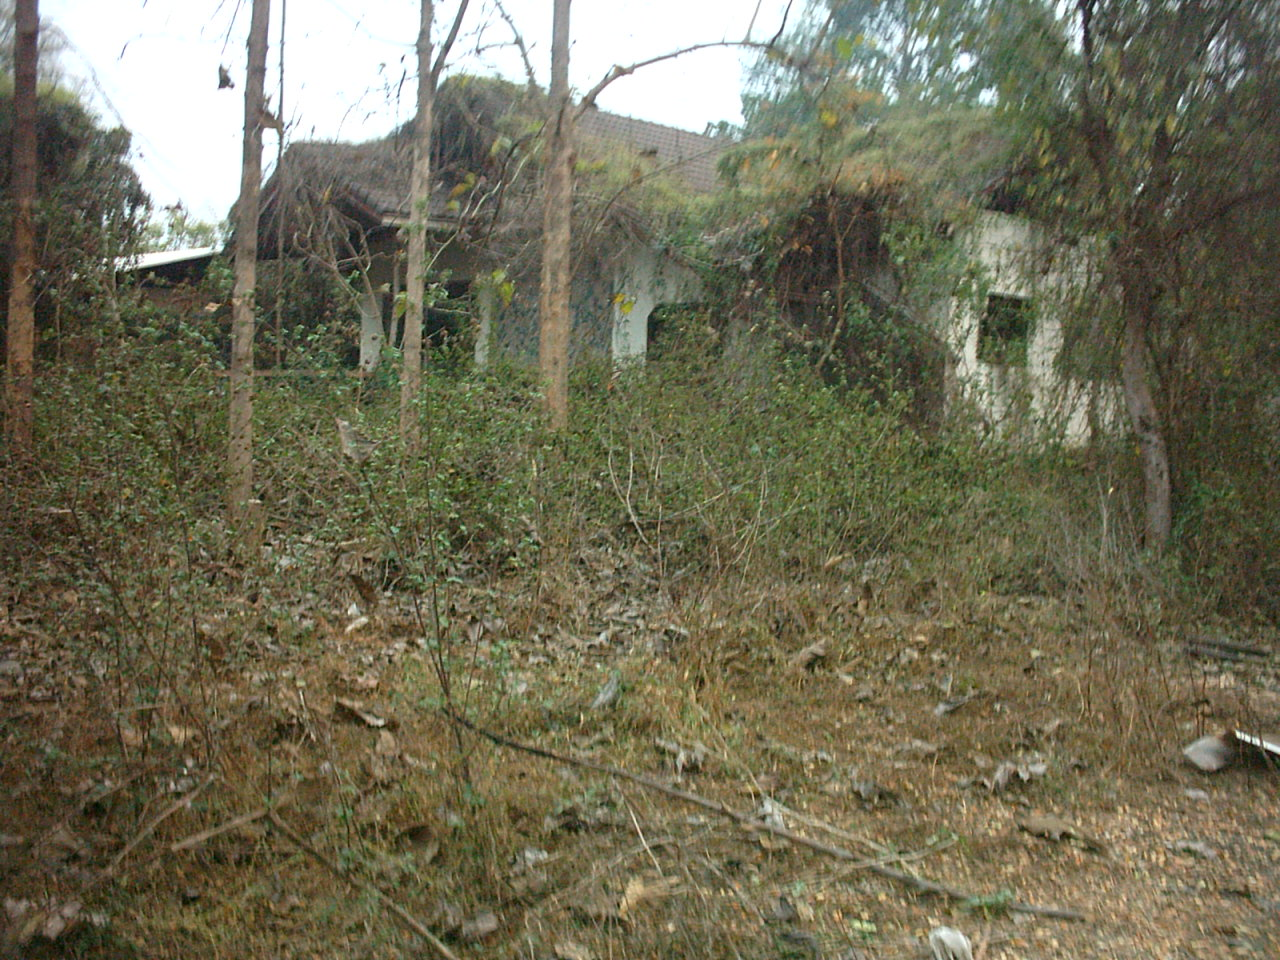 Exploring an abandoned mansion in Chiang Mai-05020224-jpg